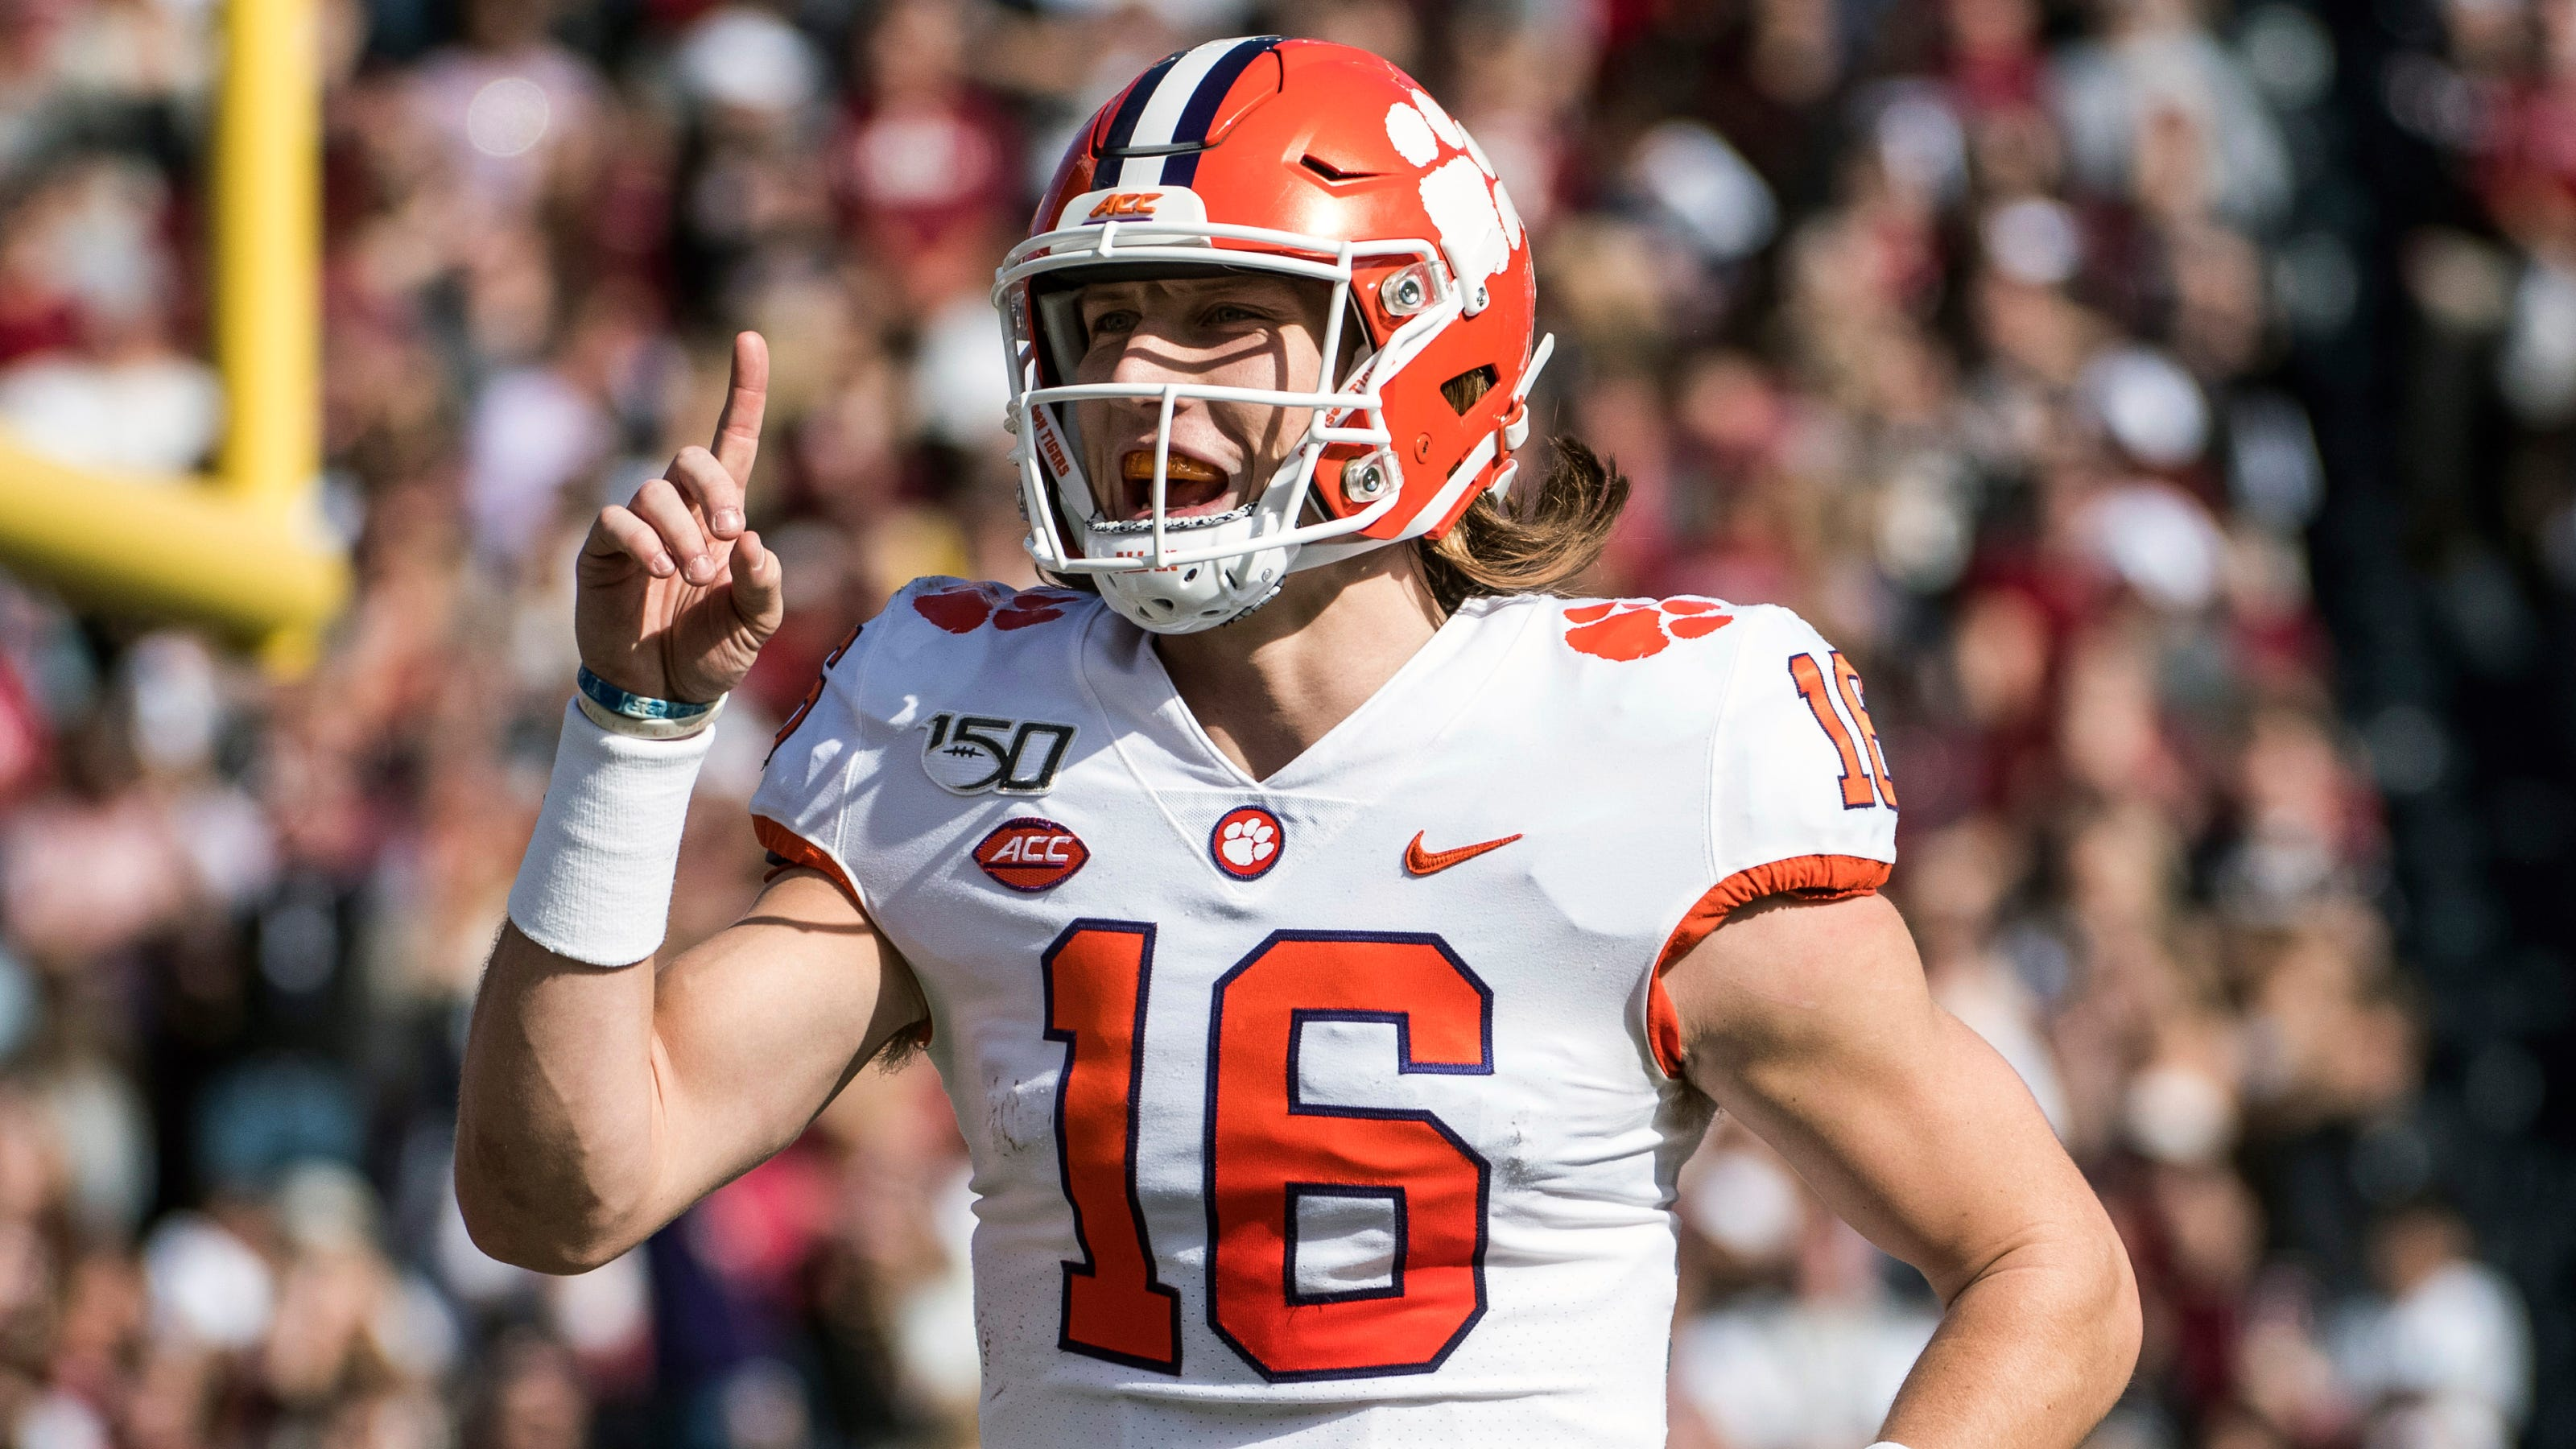 Trevor Lawrence, star Clemson QB, tests positive for COVID-19